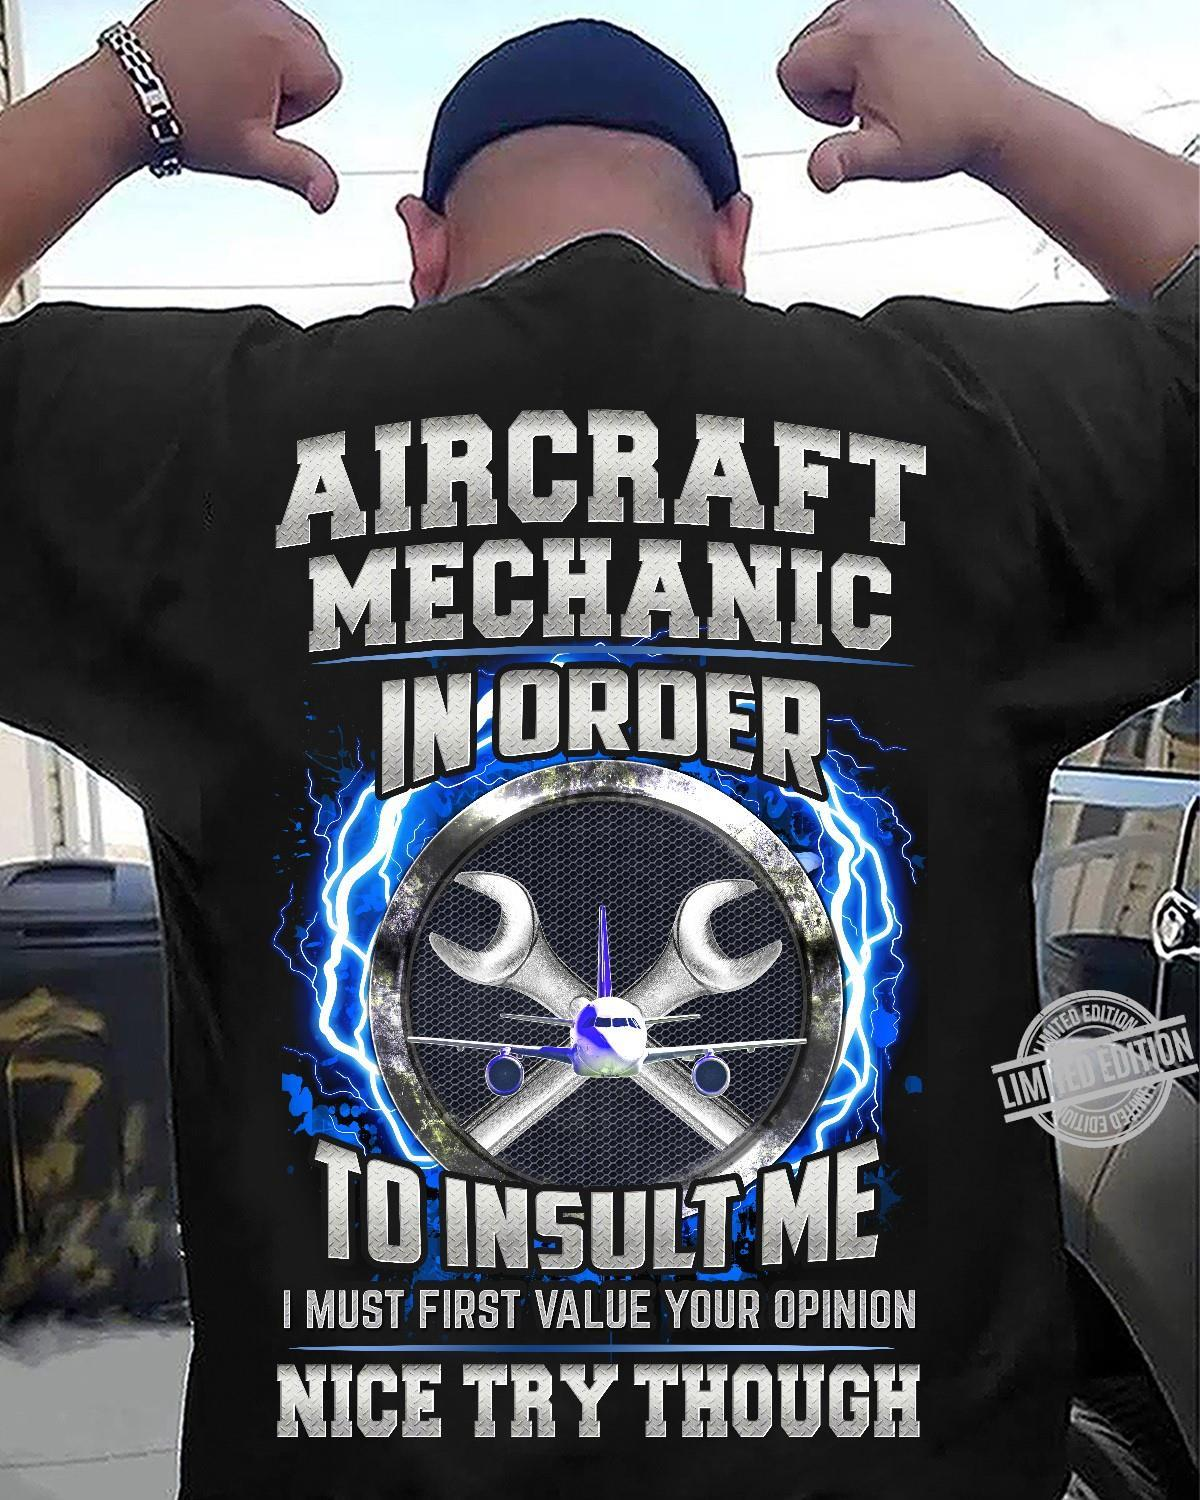 Aircraft Mechanic In Order To Insult Me I Must First Value Your Opinion Nice Try Though Shirt